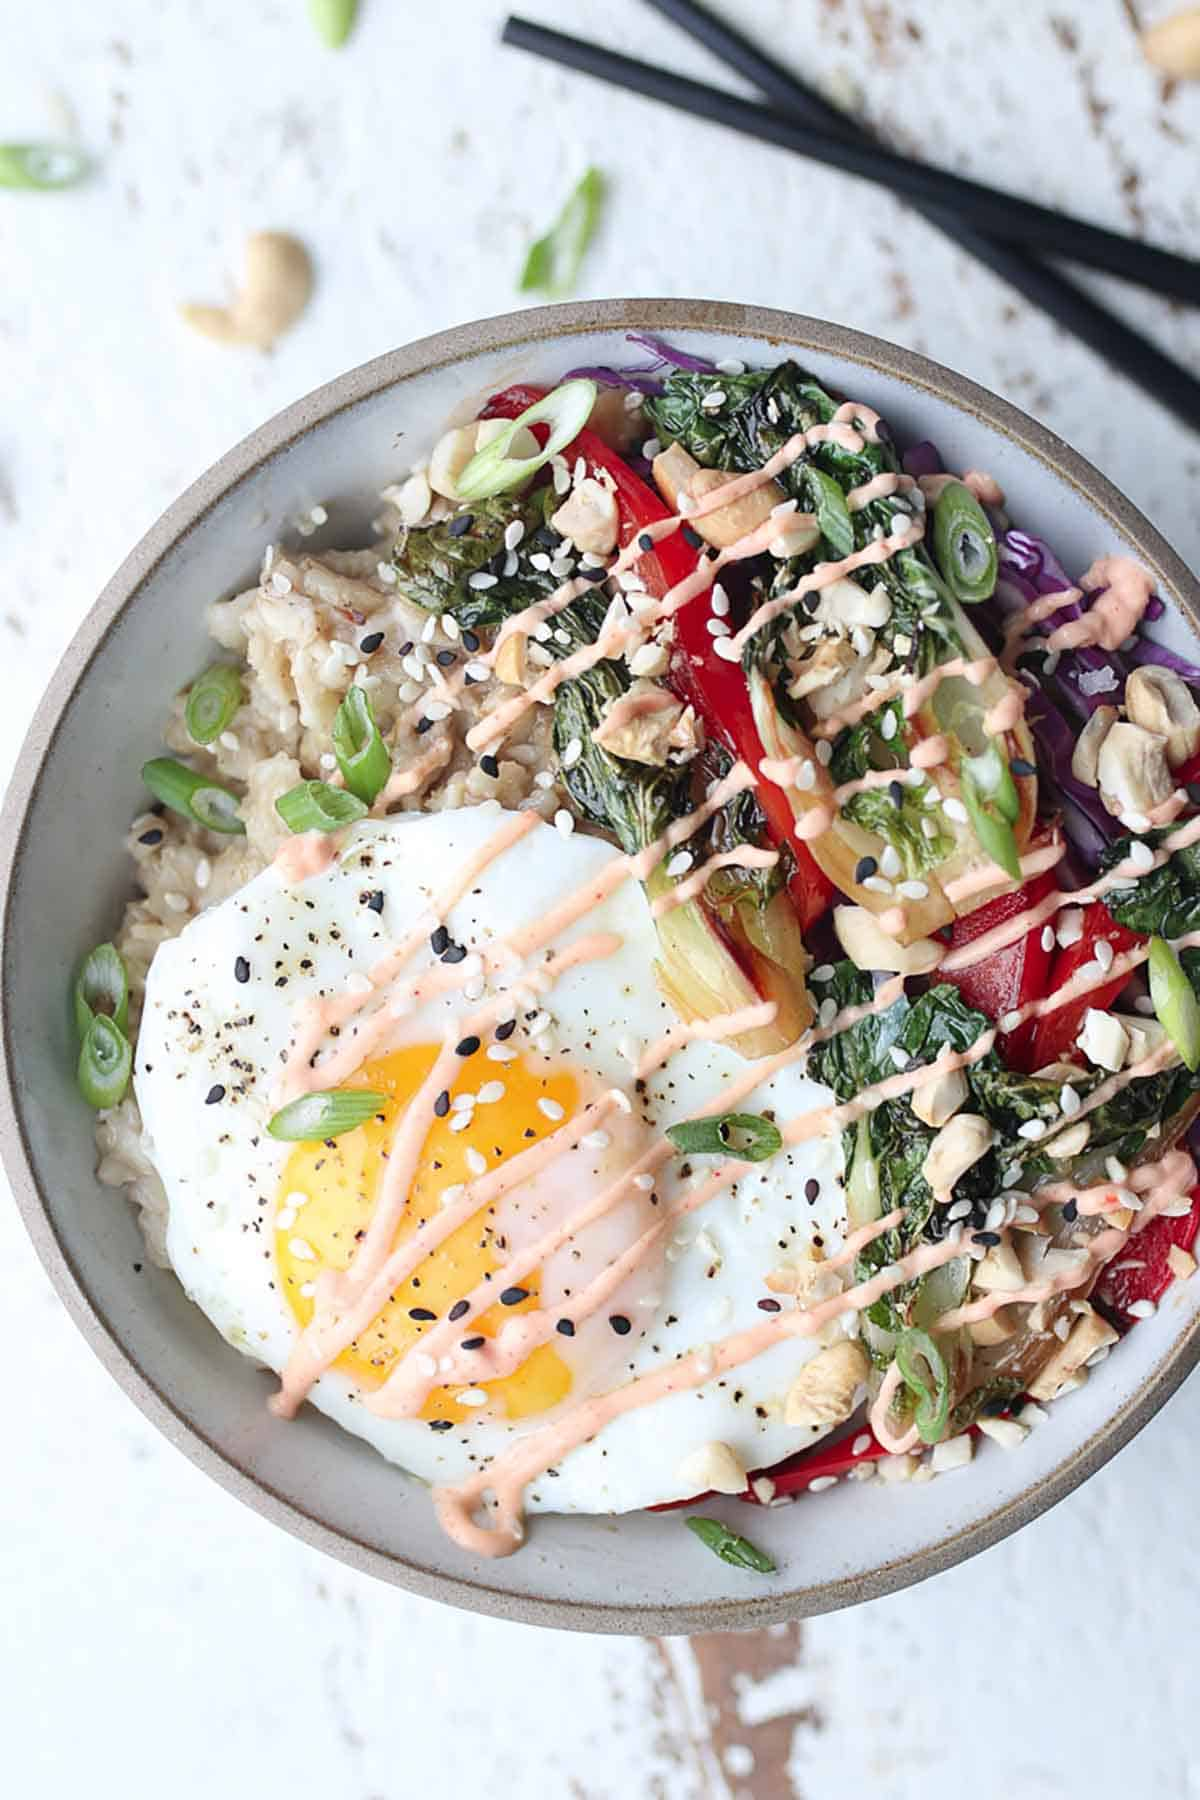 Birds eye view of a korean oatmeal bowl with an egg on top and sauteed veggies on the side and dirzzled with sauce.